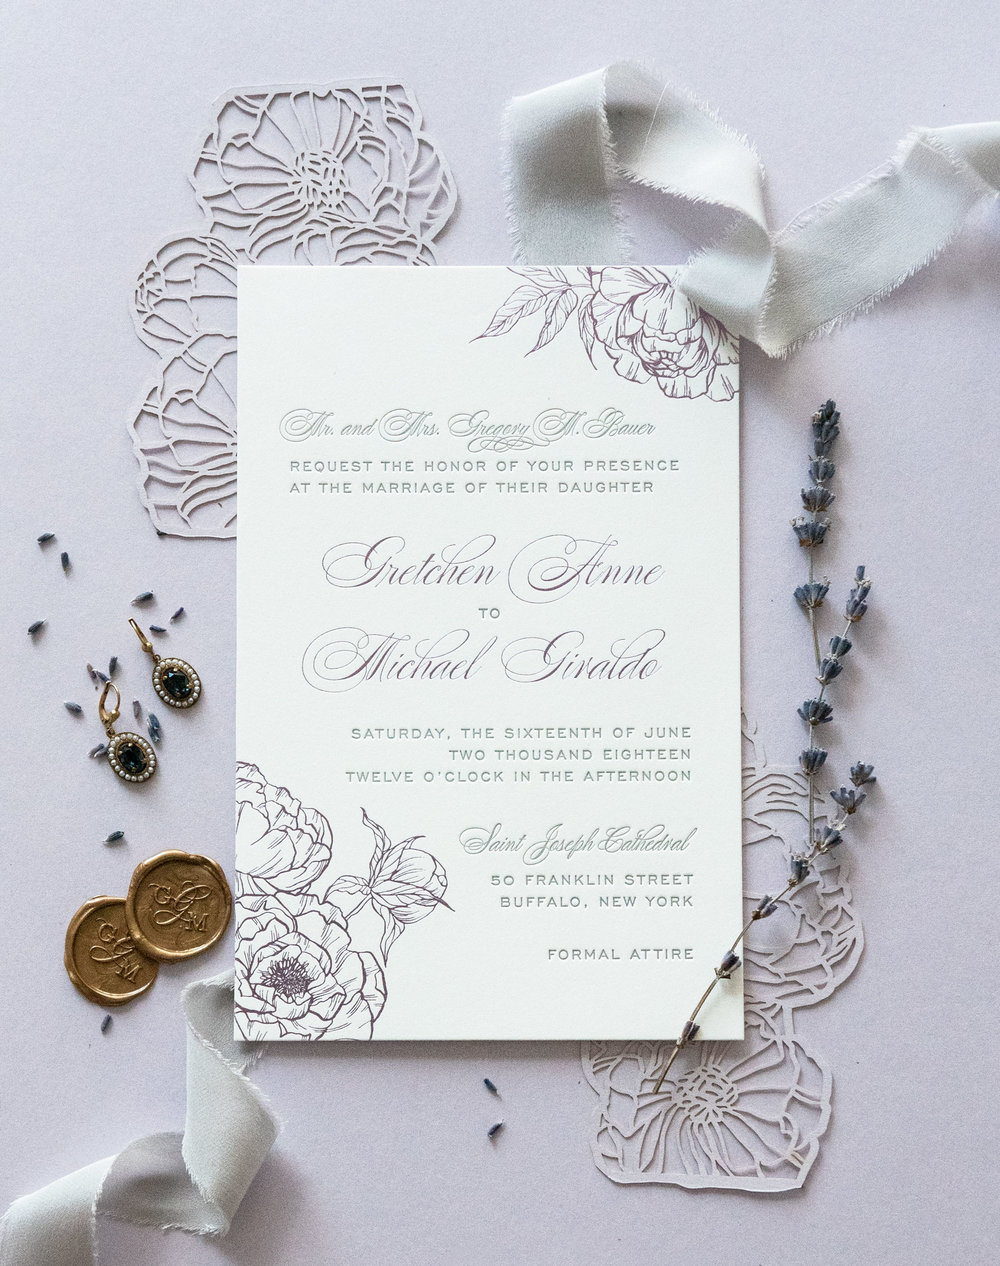 Artisan stationery - Our studio specializes in the art of bespoke stationery for weddings and events. We combine original artistry, calligraphy and graphic design to create work that is personalized and timeless.